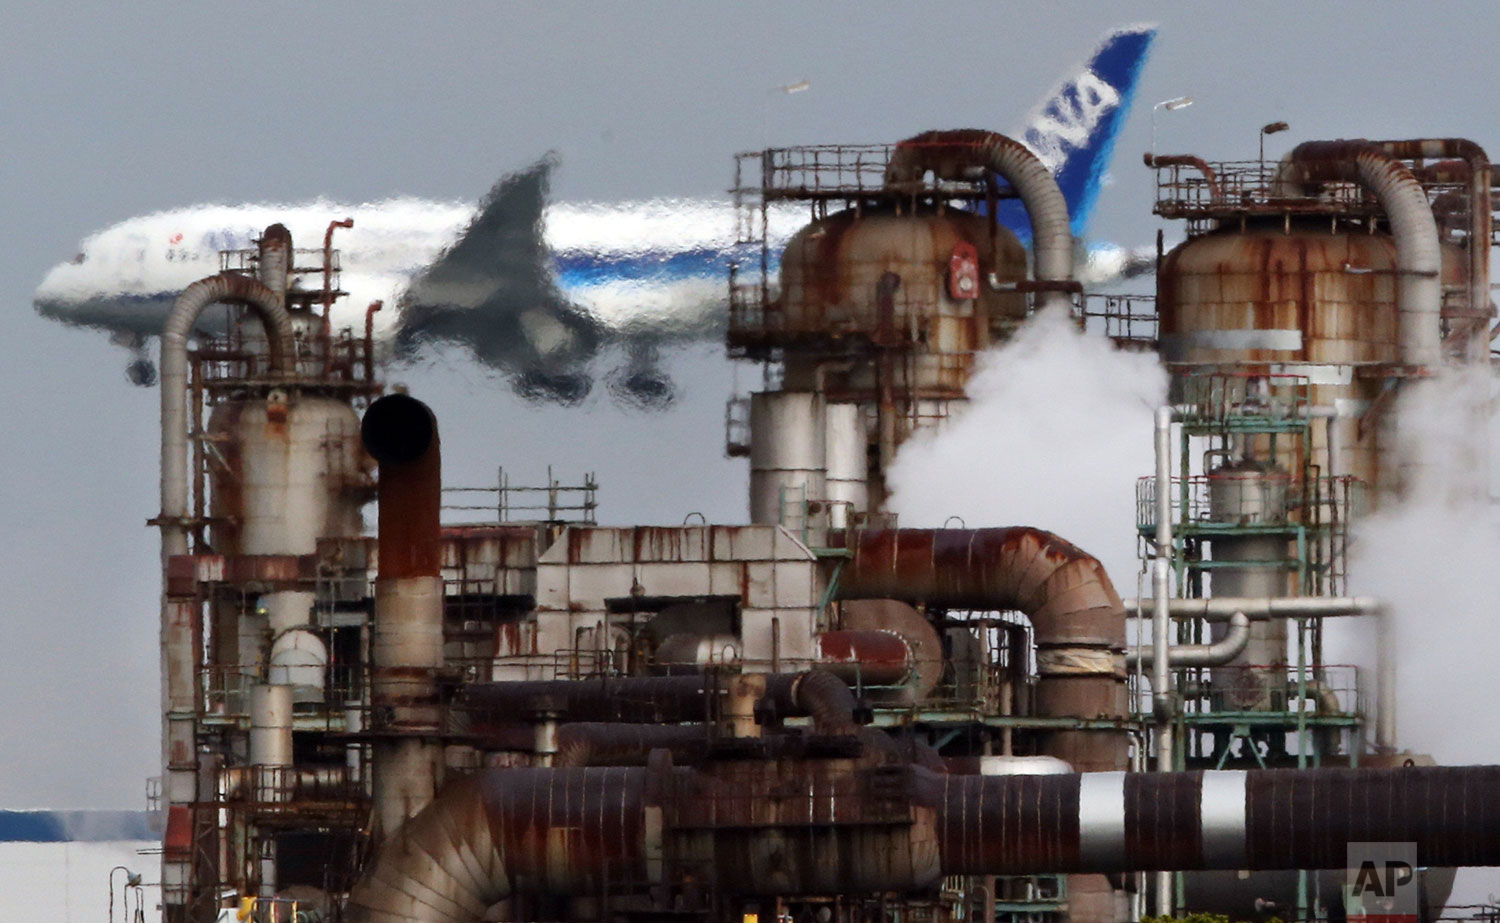 In this Thursday, Dec. 13, 2018 photo, a passenger plane prepares for landing near an oil refinery in Kawasaki, southwest of Tokyo. (AP Photo/Koji Sasahara)